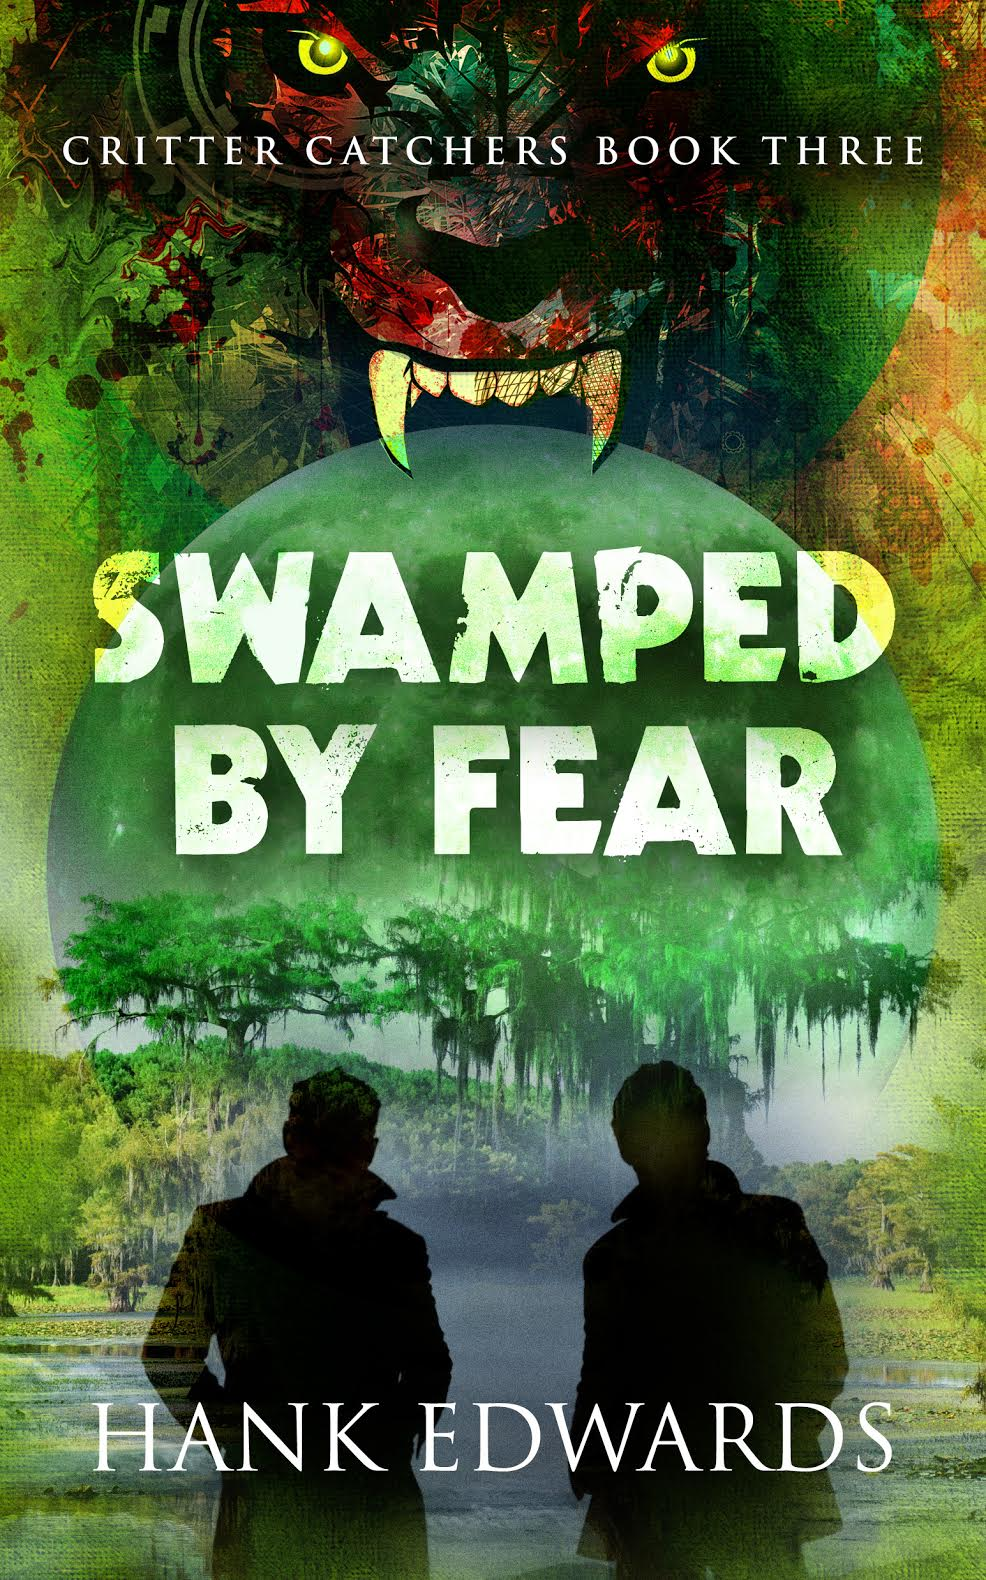 Swamped by Fear - Hank Edwards - Critter Catchers